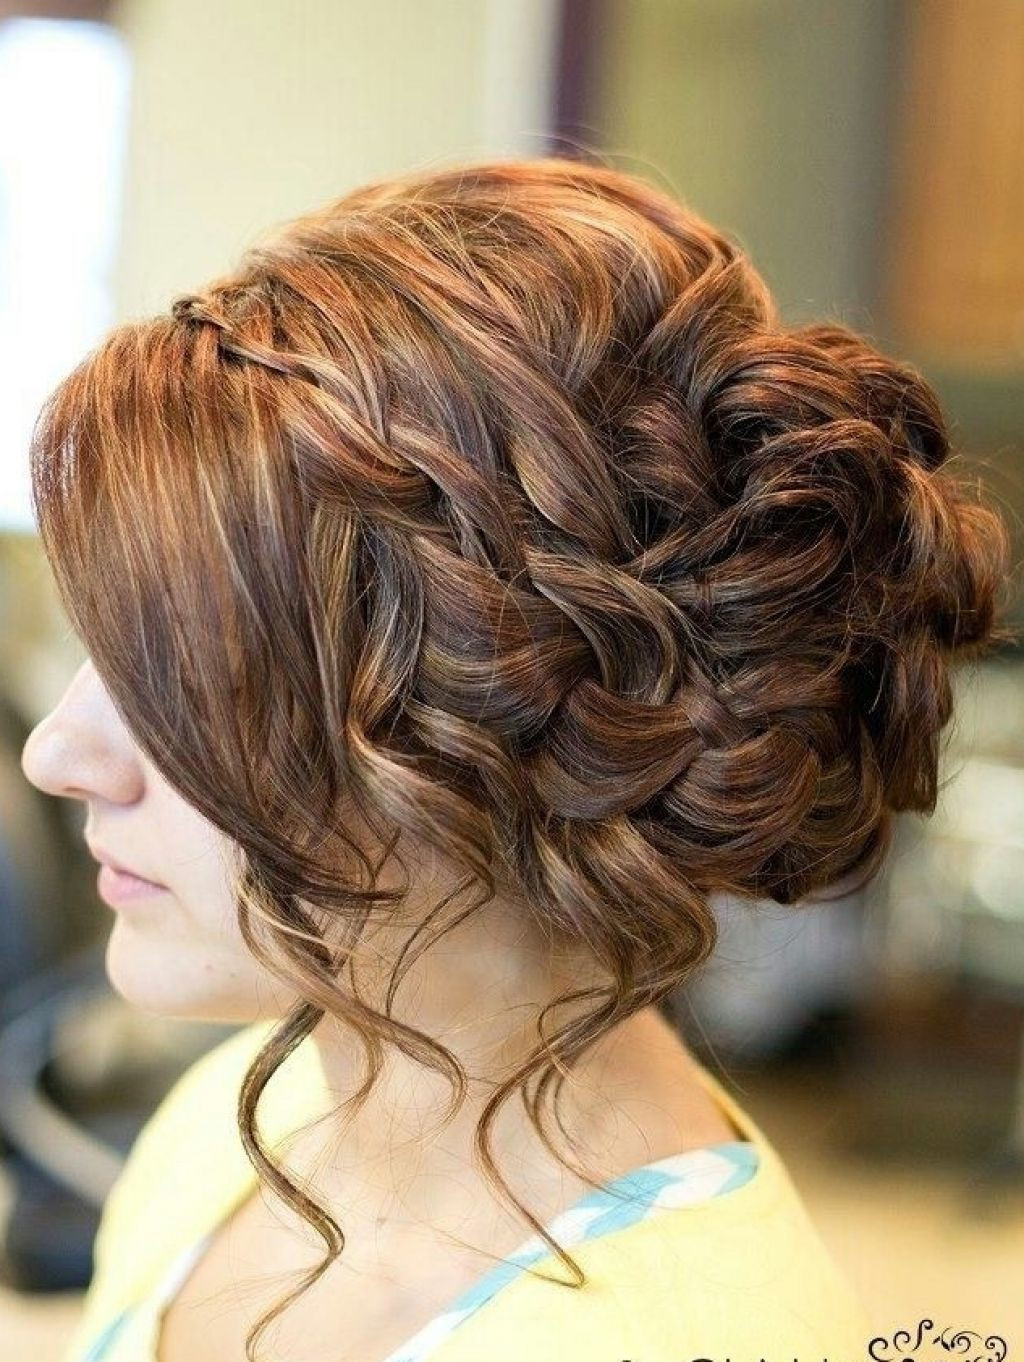 Best ideas about Updo Hairstyle . Save or Pin 14 Prom Hairstyles for Long Hair that are Simply Adorable Now.